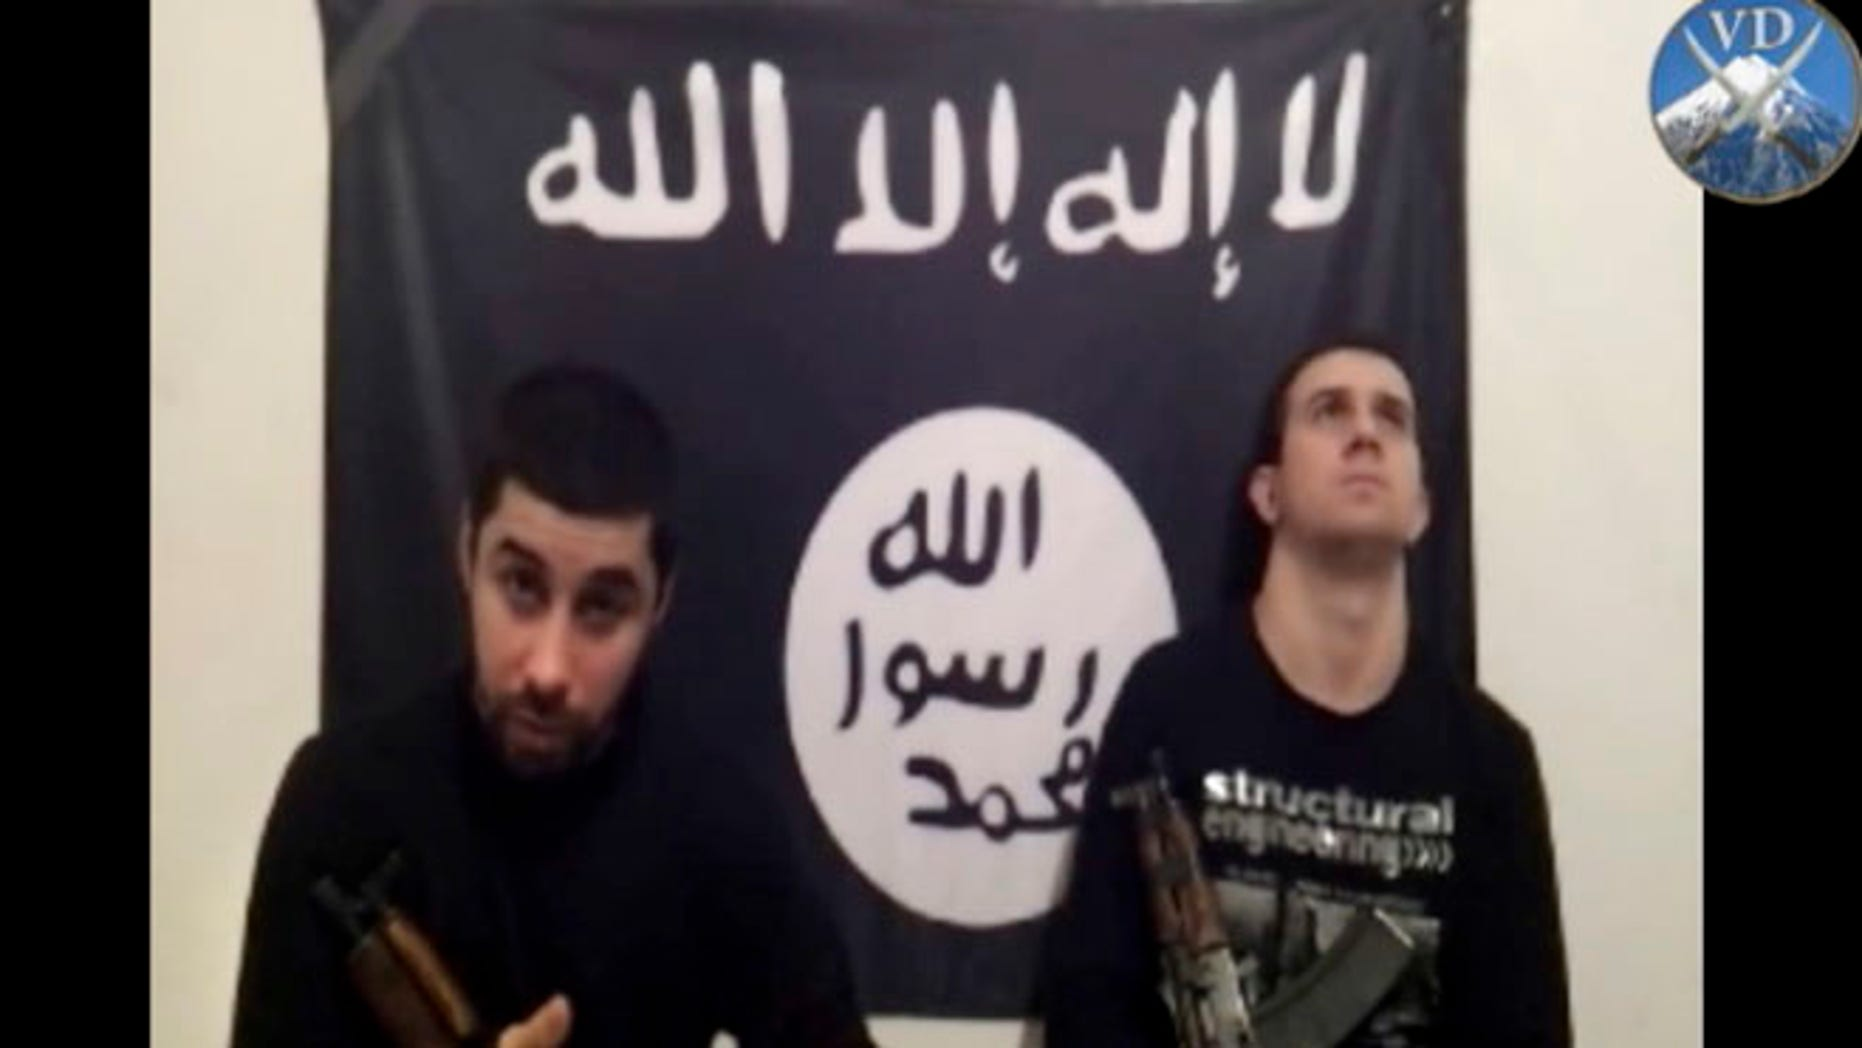 In this image made from a video posted online Sunday, Jan. 19, 2014 by an Islamic militant group asserting responsibility for suicide bombings last month that killed 34 people in Volgograd, Russia, two men, identified as Suleiman and Abdurakhman and who purportedly carried out the twin suicide bombings are seen at an unknown location.